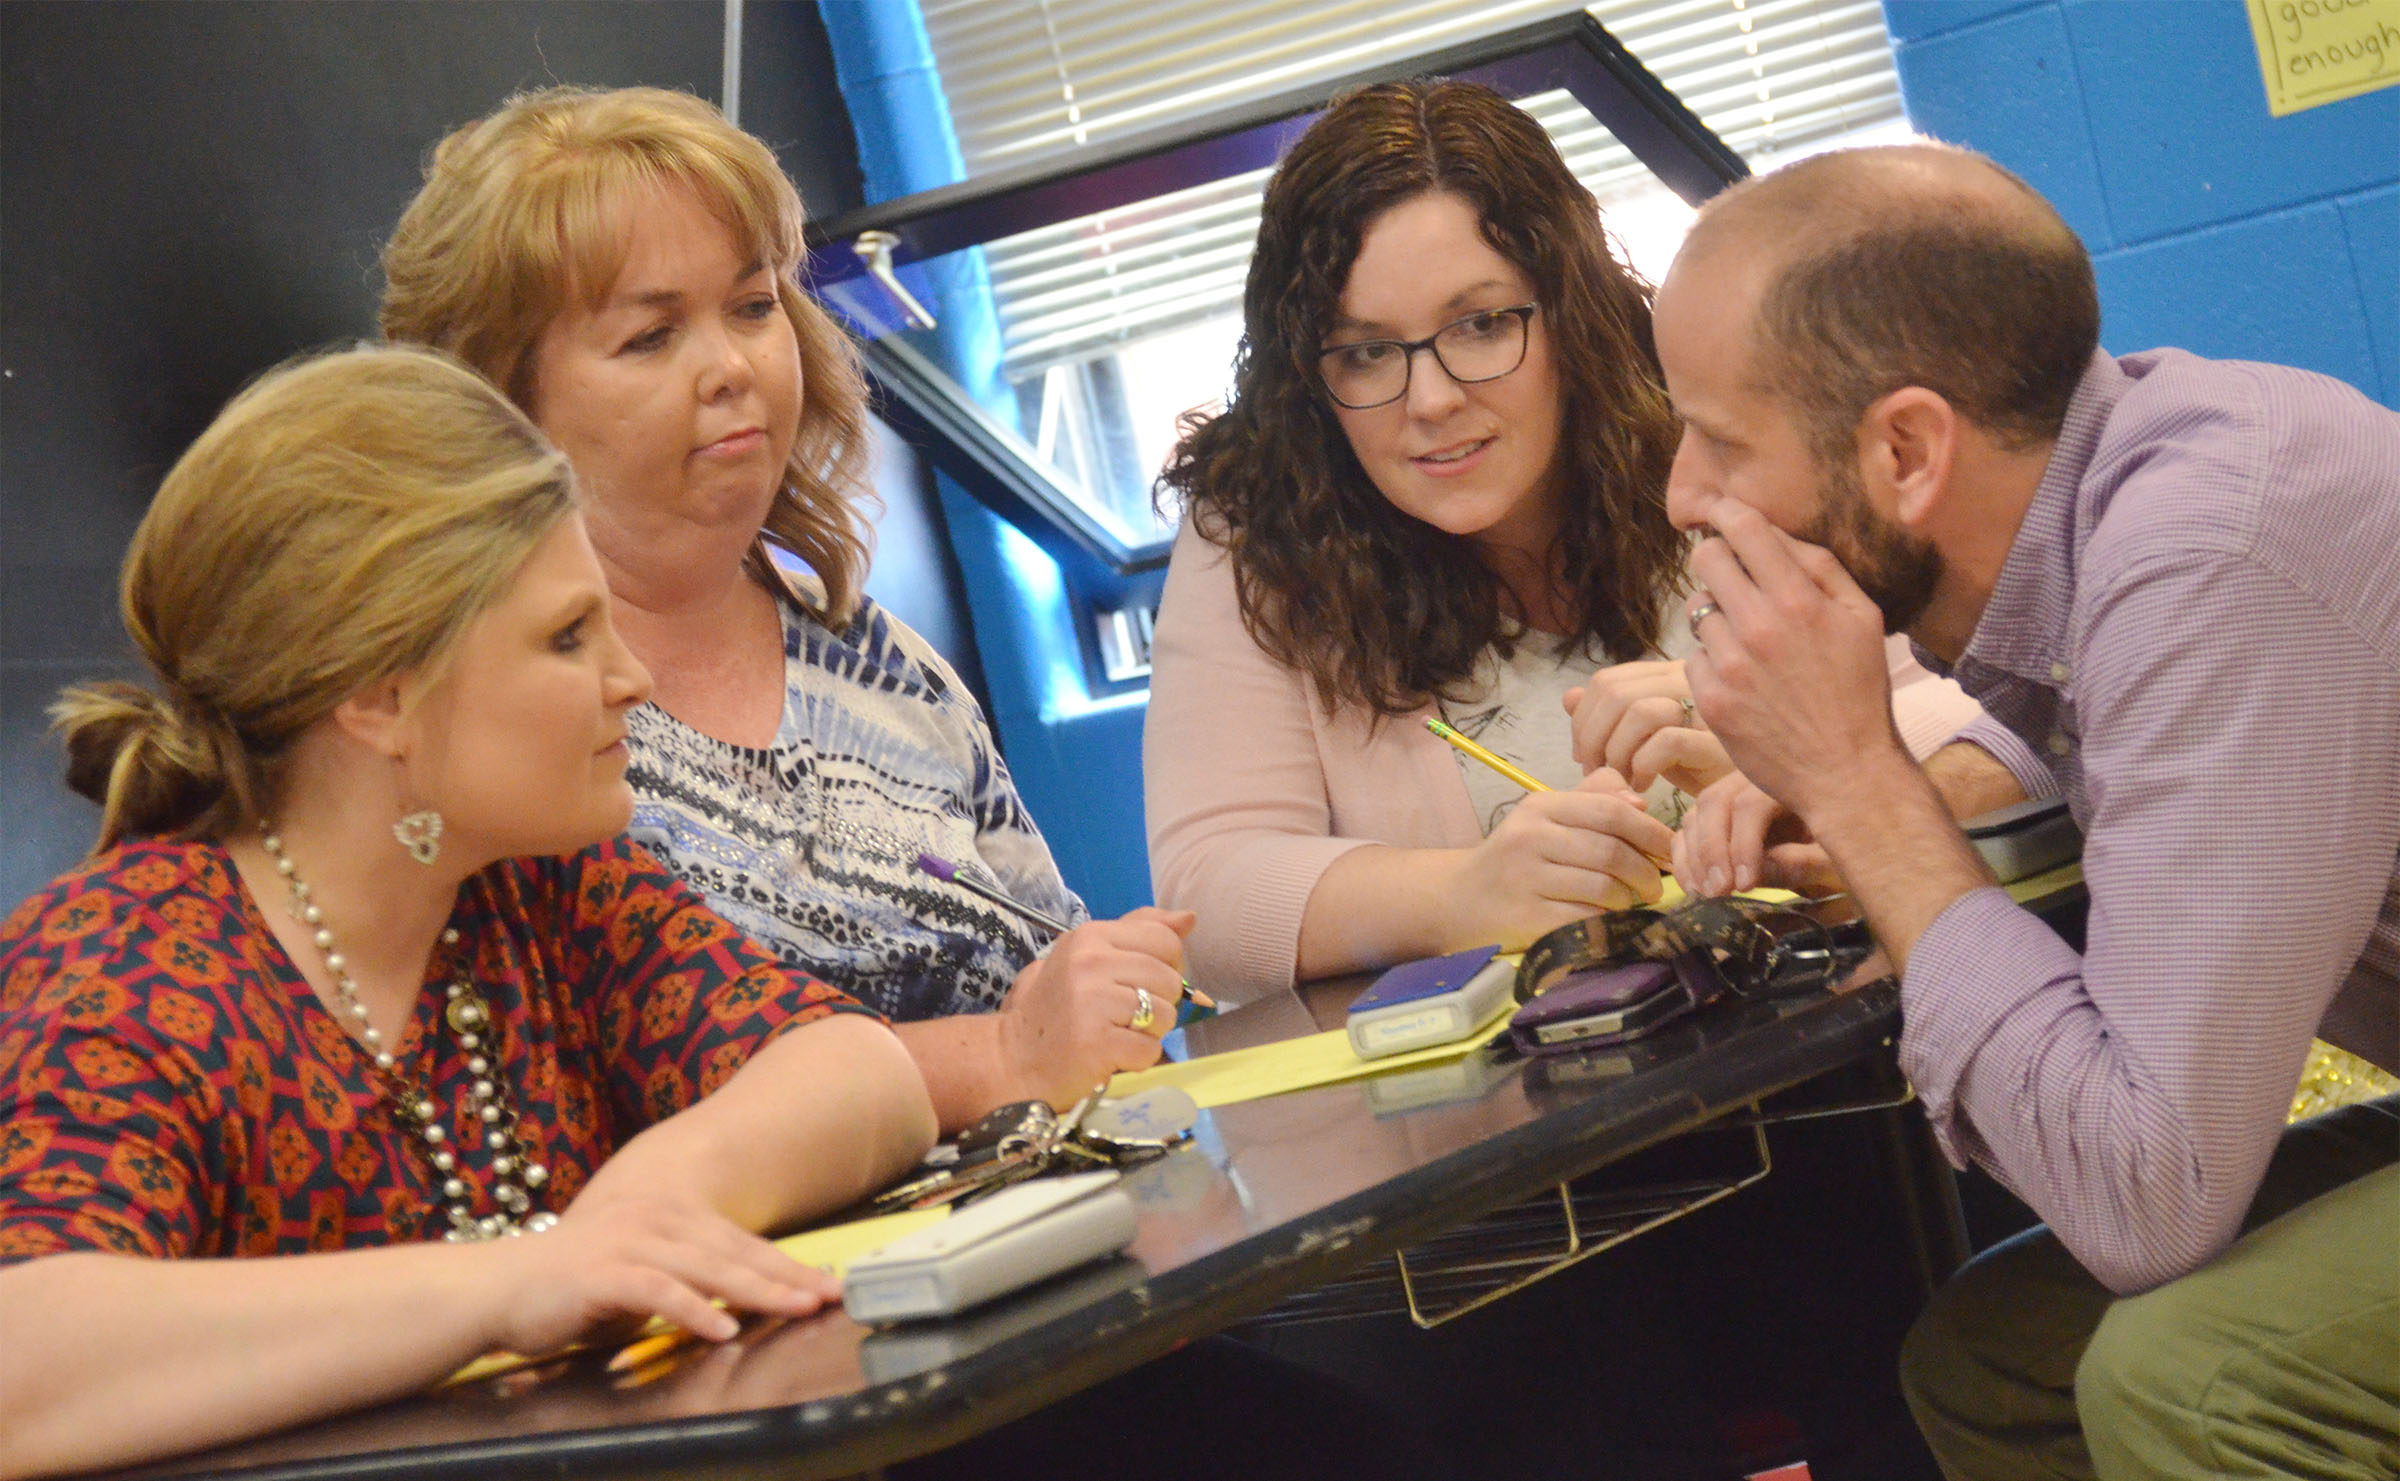 CHS teachers, from left, Lauren Bennett, Sonya Kessler, Lindsay Williams and Ben Davis discuss a question.